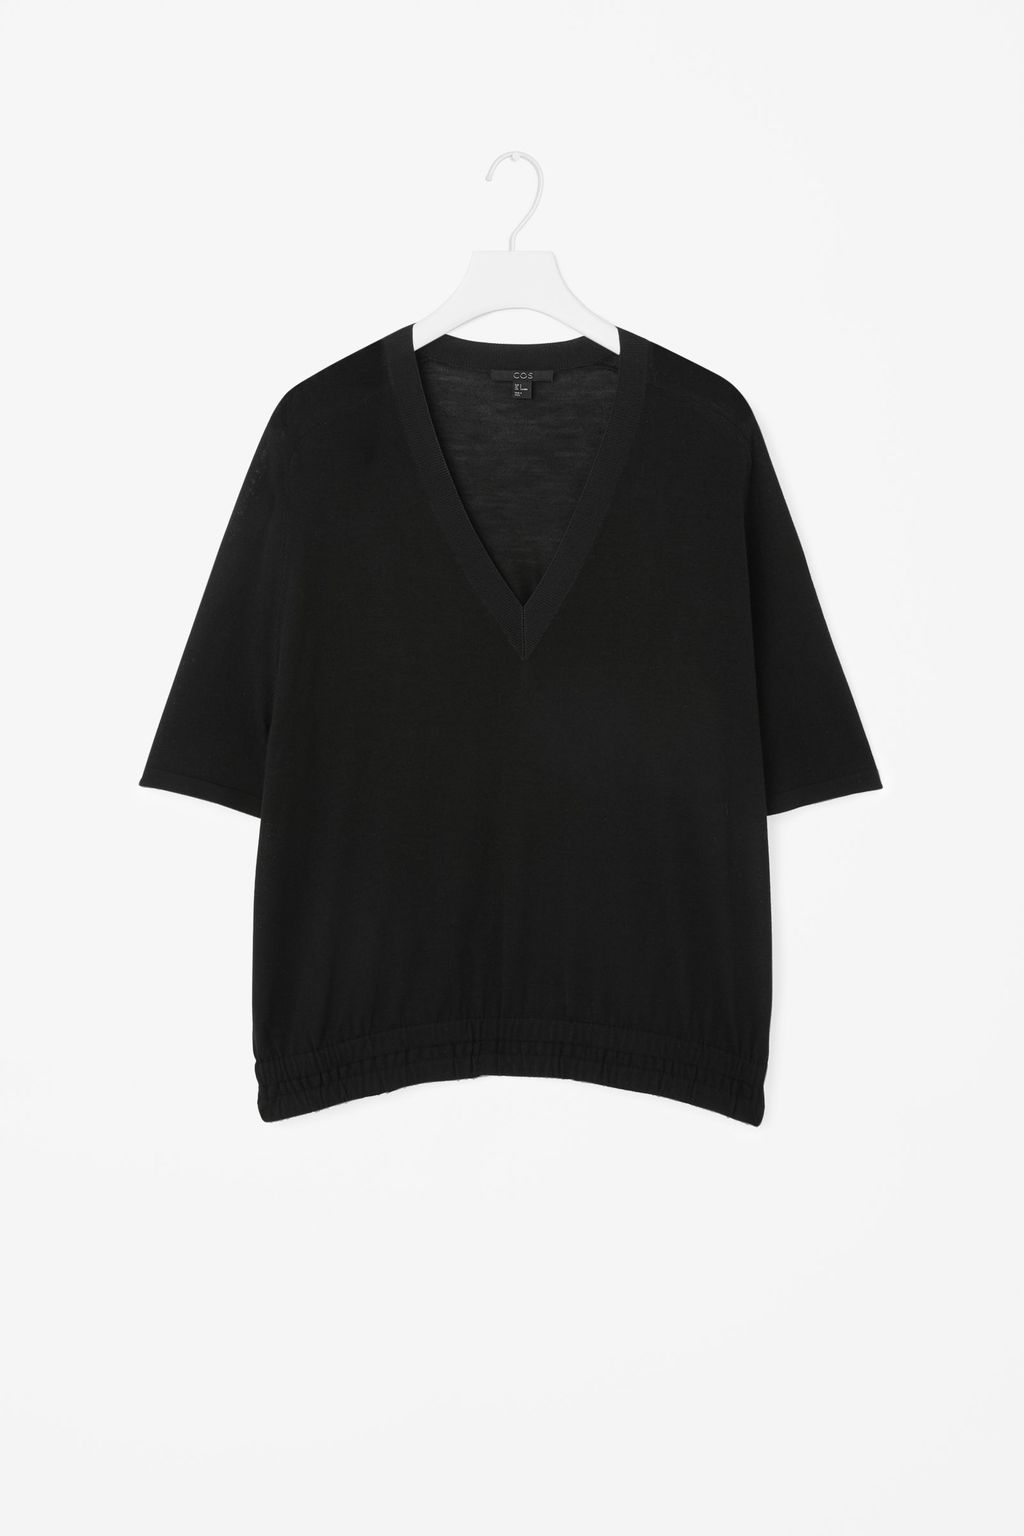 Elasticated Waist Knit Top - neckline: low v-neck; pattern: plain; predominant colour: black; occasions: casual, creative work; length: standard; style: top; fibres: wool - 100%; fit: loose; sleeve length: half sleeve; sleeve style: standard; texture group: knits/crochet; pattern type: knitted - fine stitch; season: a/w 2015; wardrobe: basic